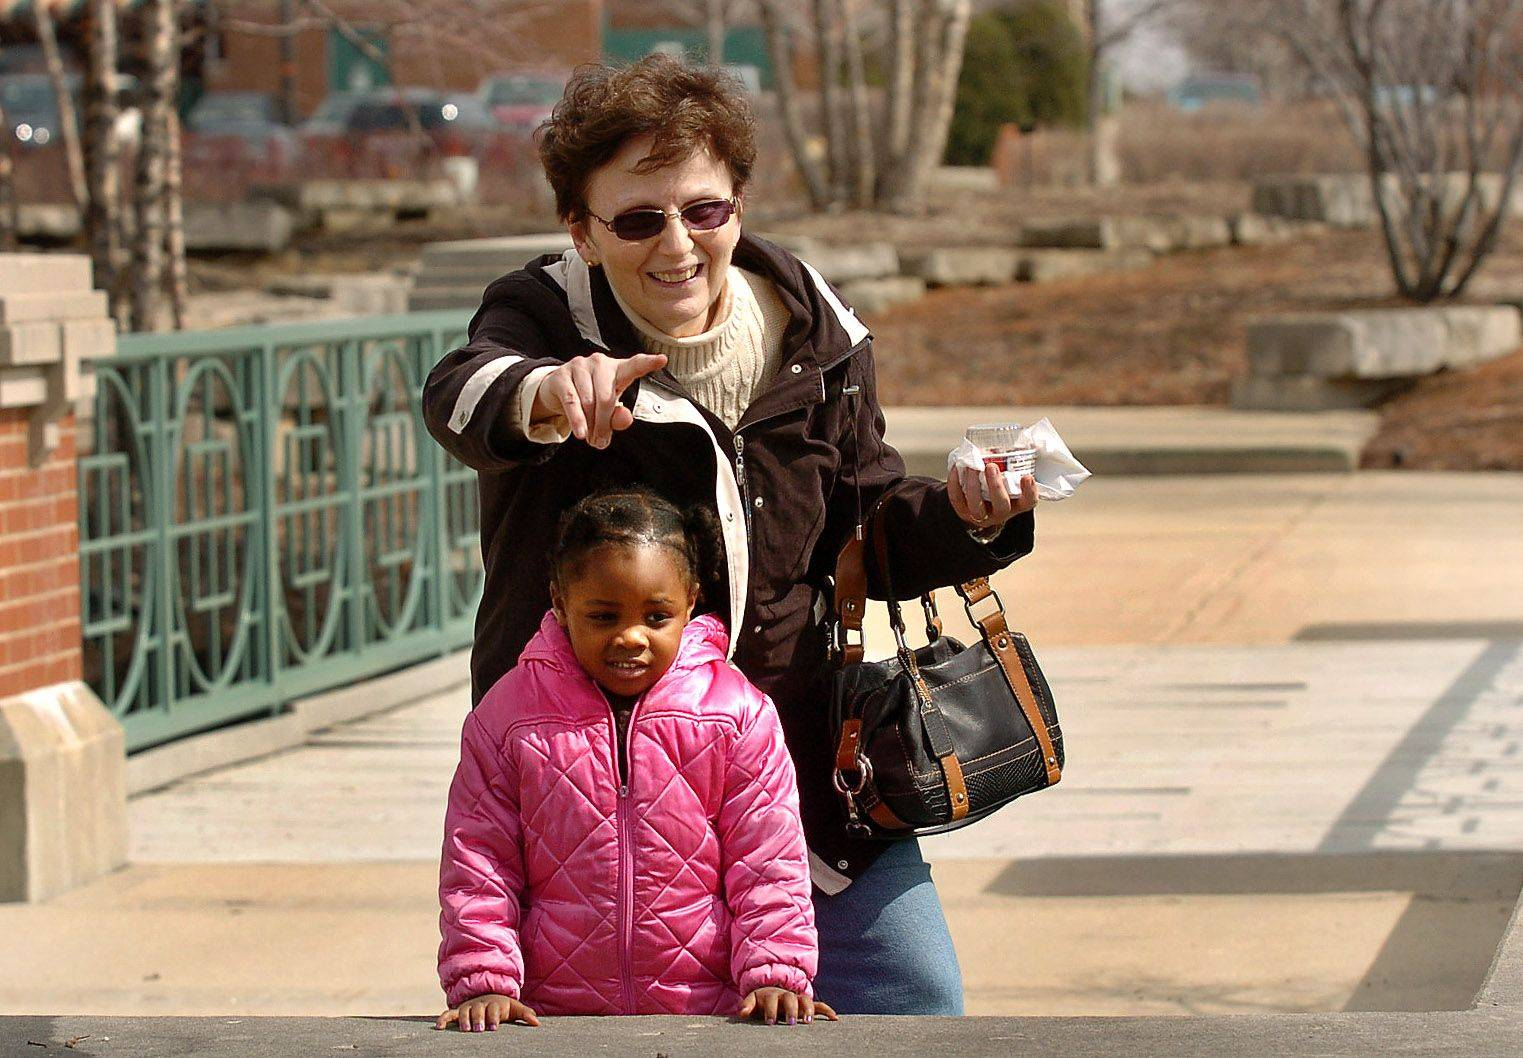 Carolyn Scutella takes an afternoon stroll with 4-year-old Melyssa Muwanga in search of ducks in the Town Square pond next to the Schaumburg library.